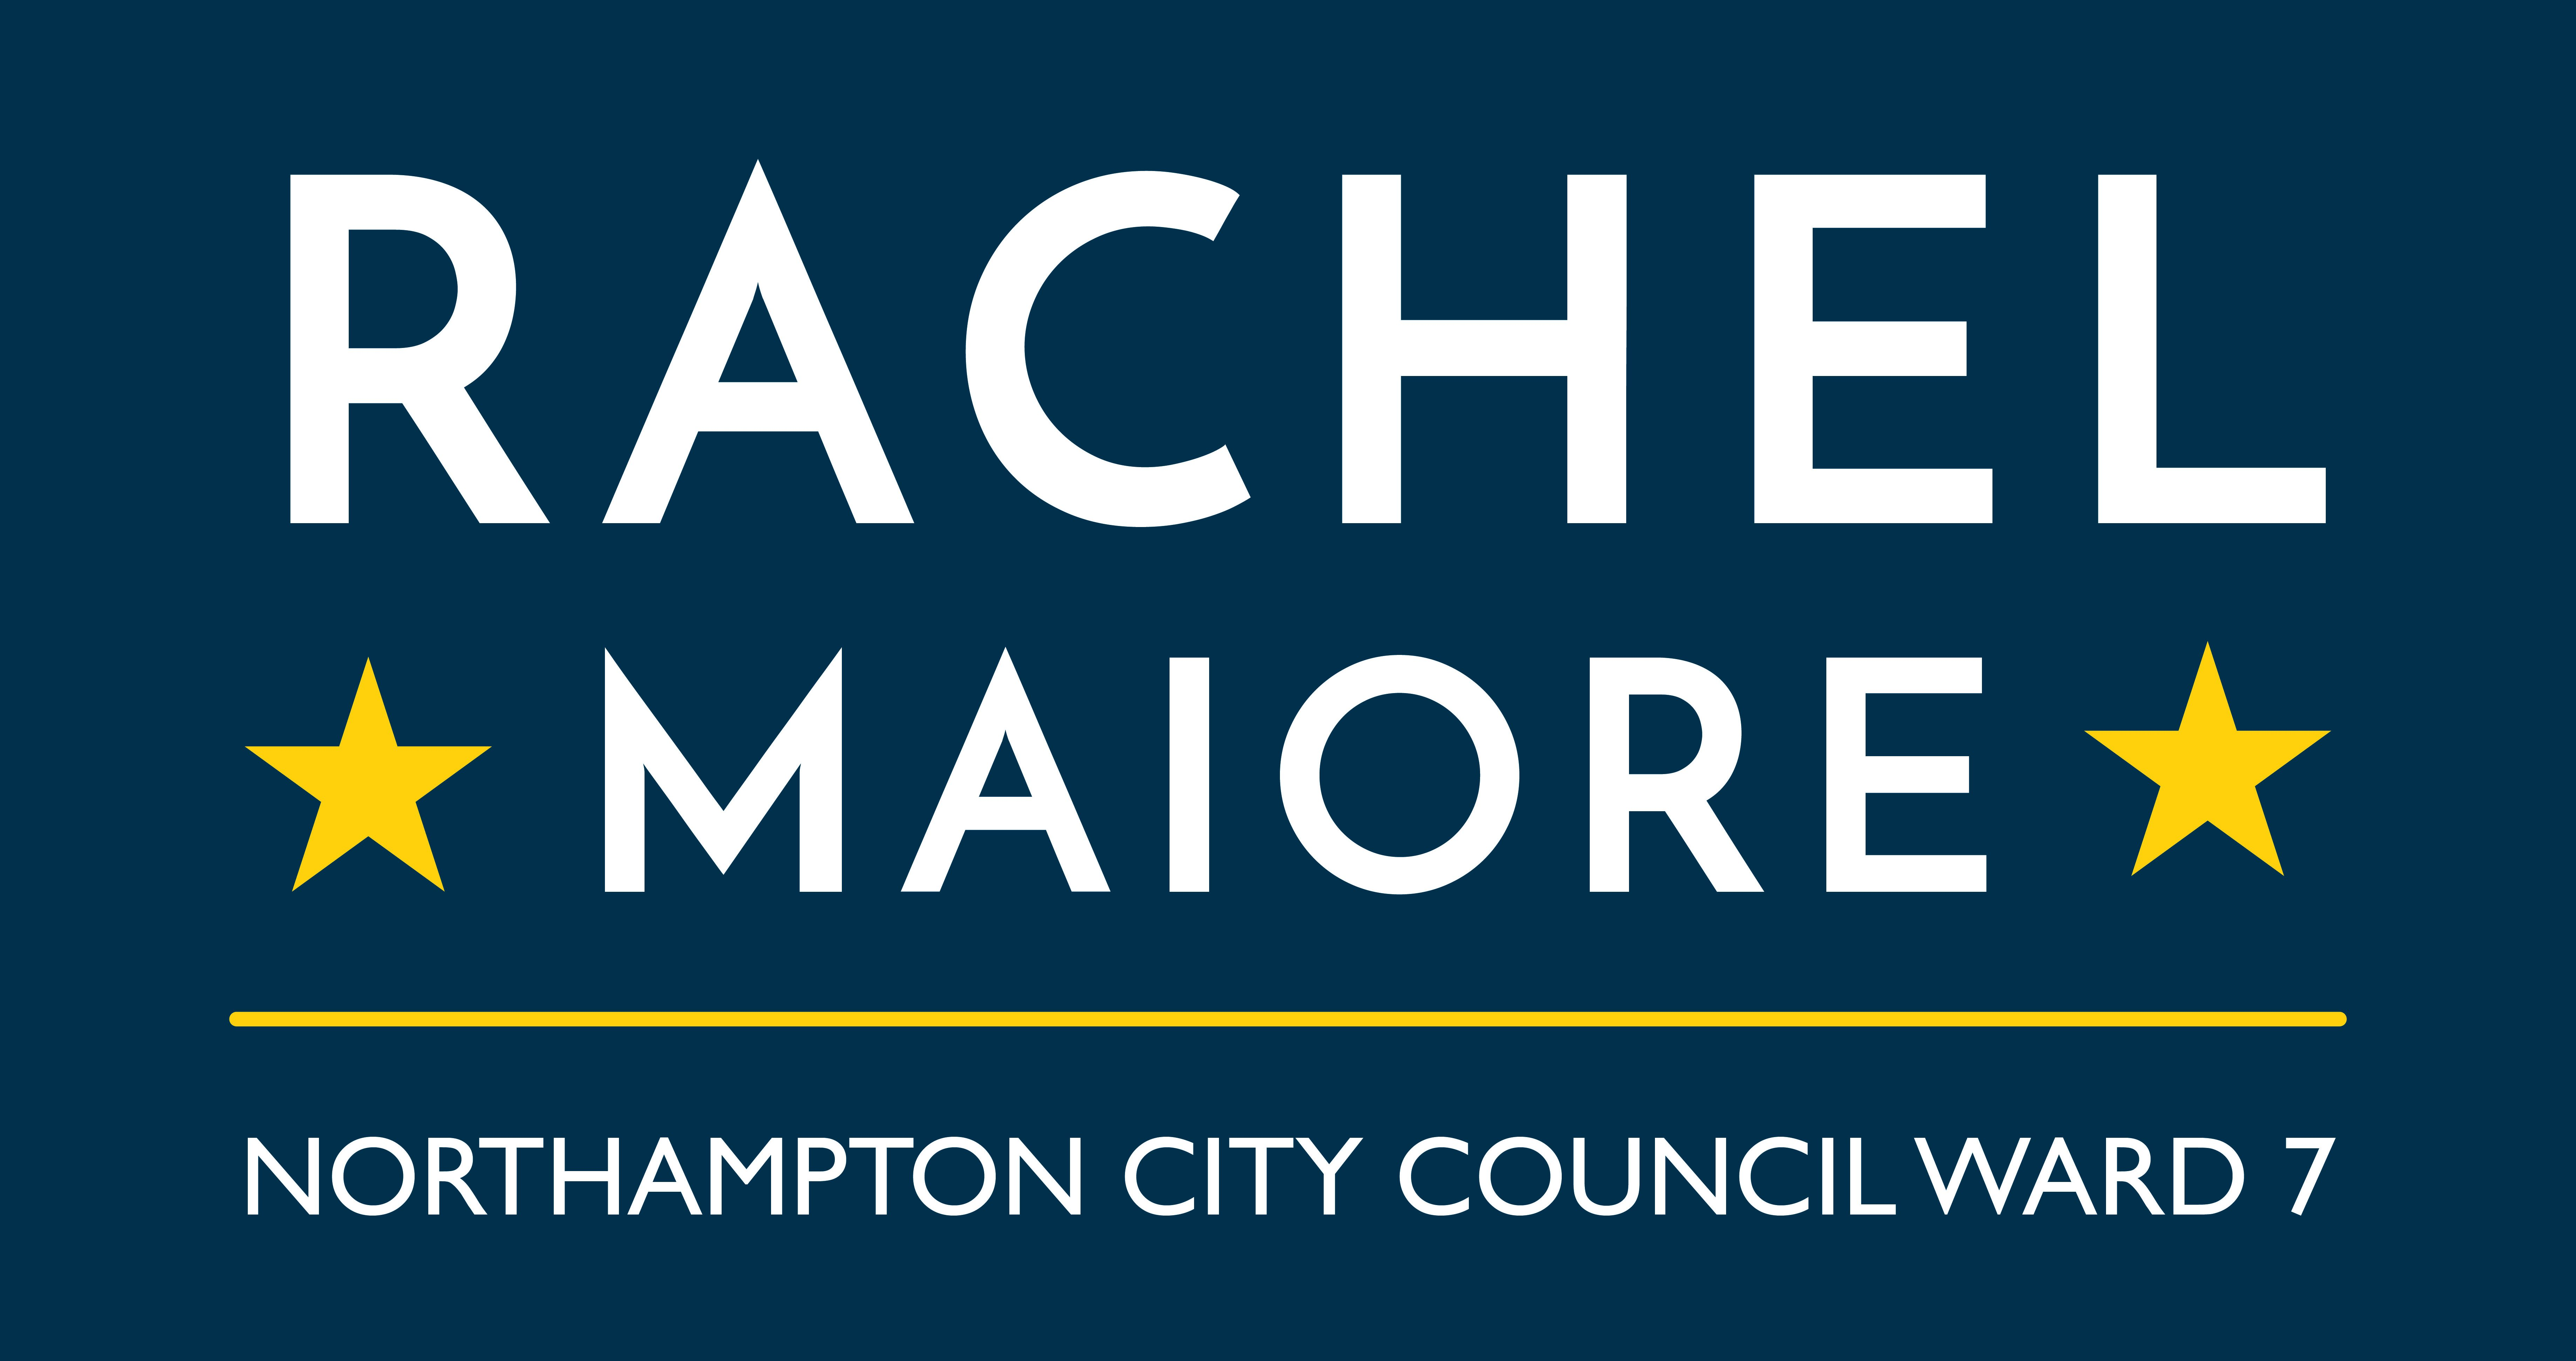 Rachel Maiore for Northampton City Councilor, Ward 7